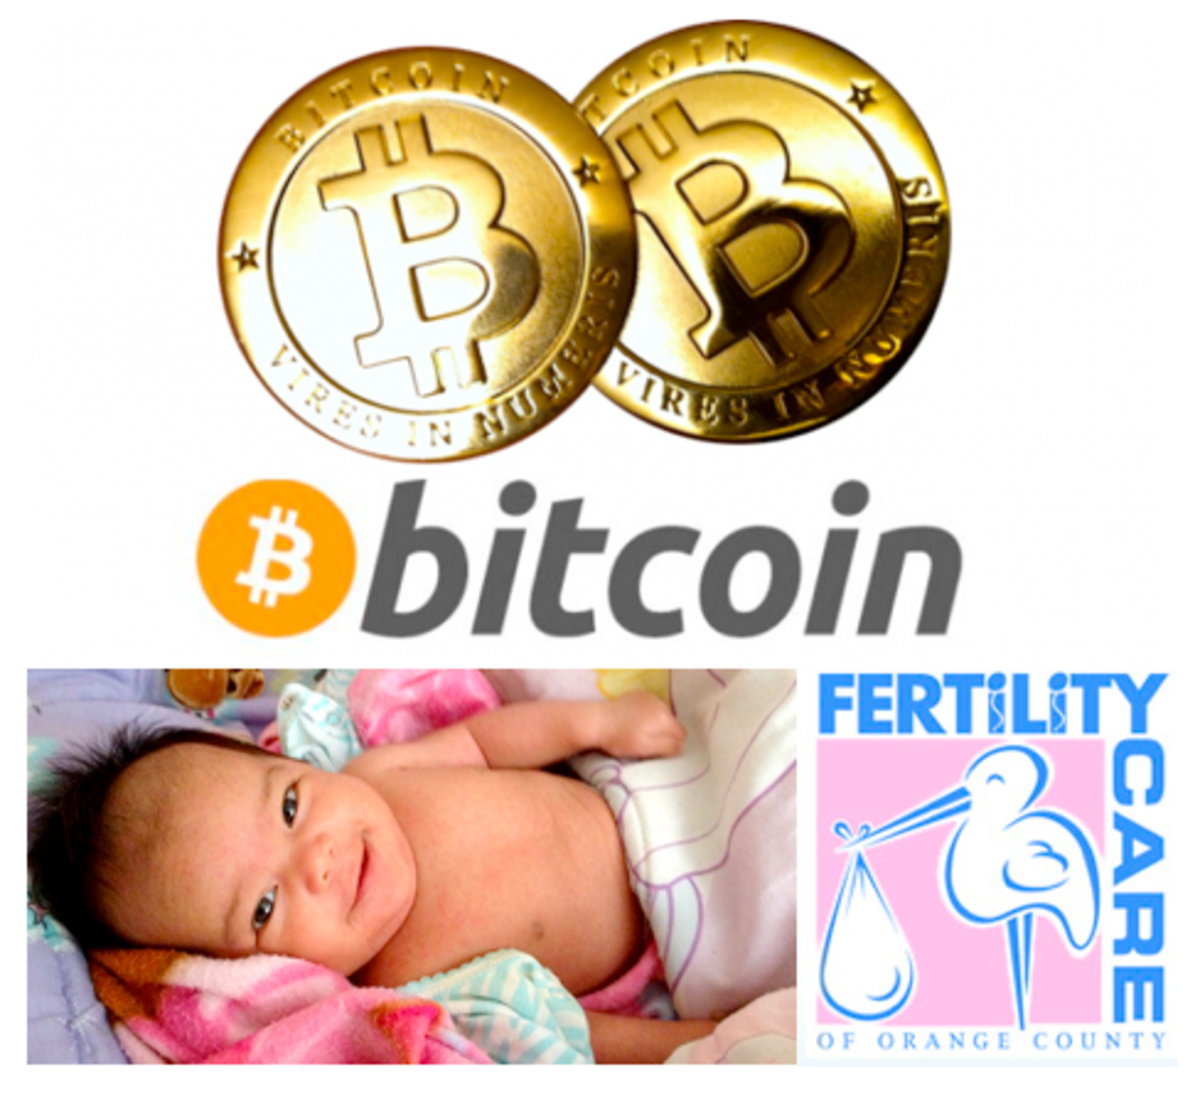 Op-ed - Bitcoin Becoming a Household Name with the First Bitcoin Baby